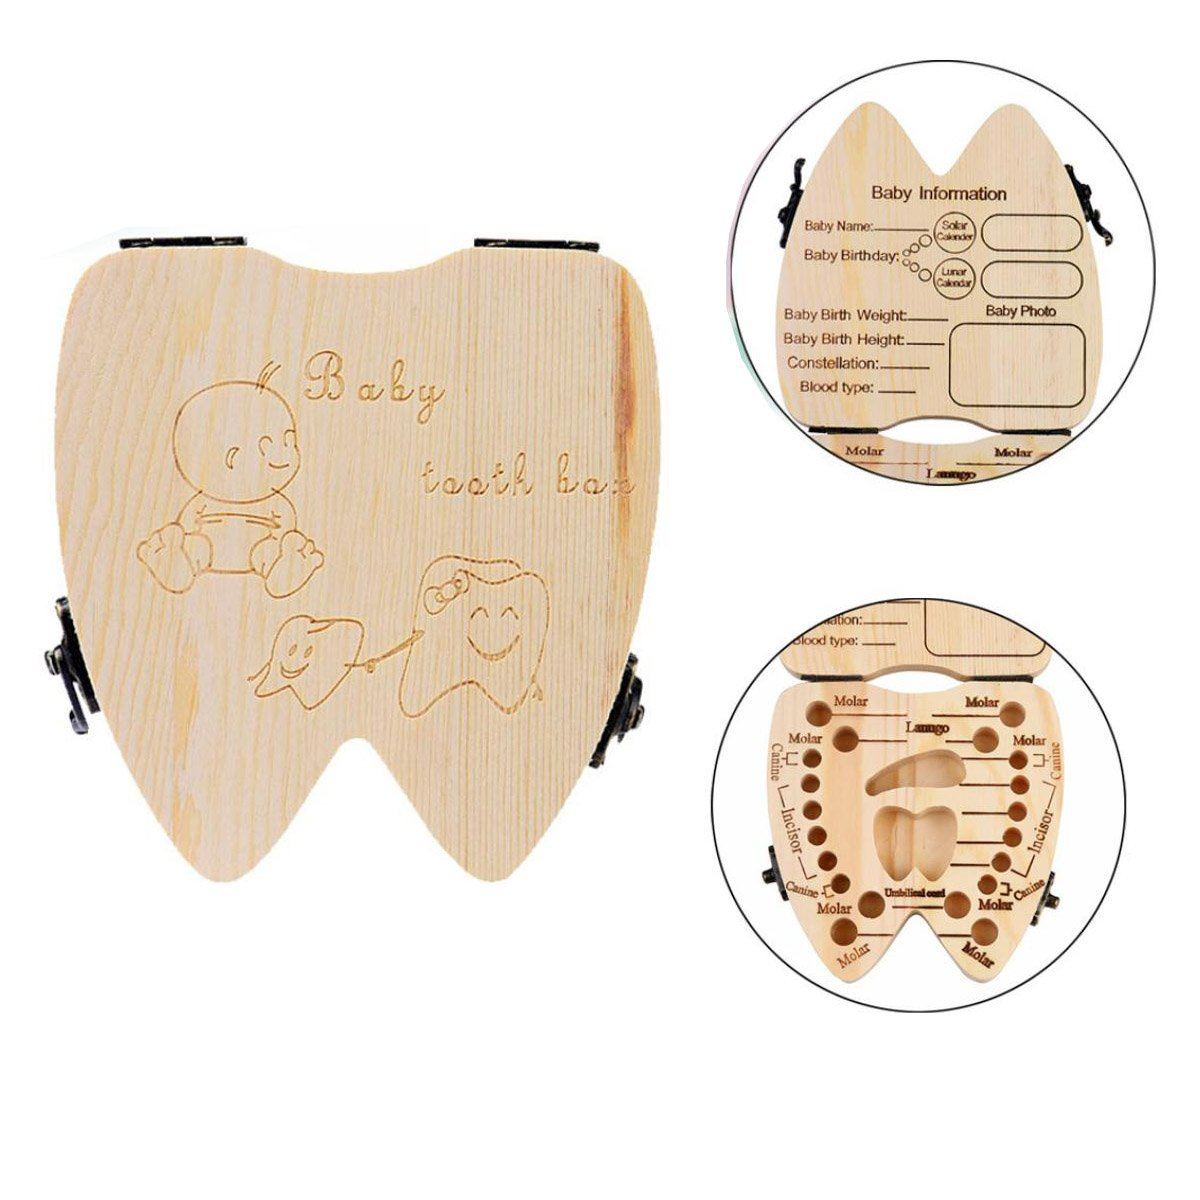 Oucan Baby Wooden Teeth Save Box Milk Teeth Wood Case Storage Kids Keepsake Organizer Teeth Collection Souvenir Box for Kids Boys Girls (Style A Girl)